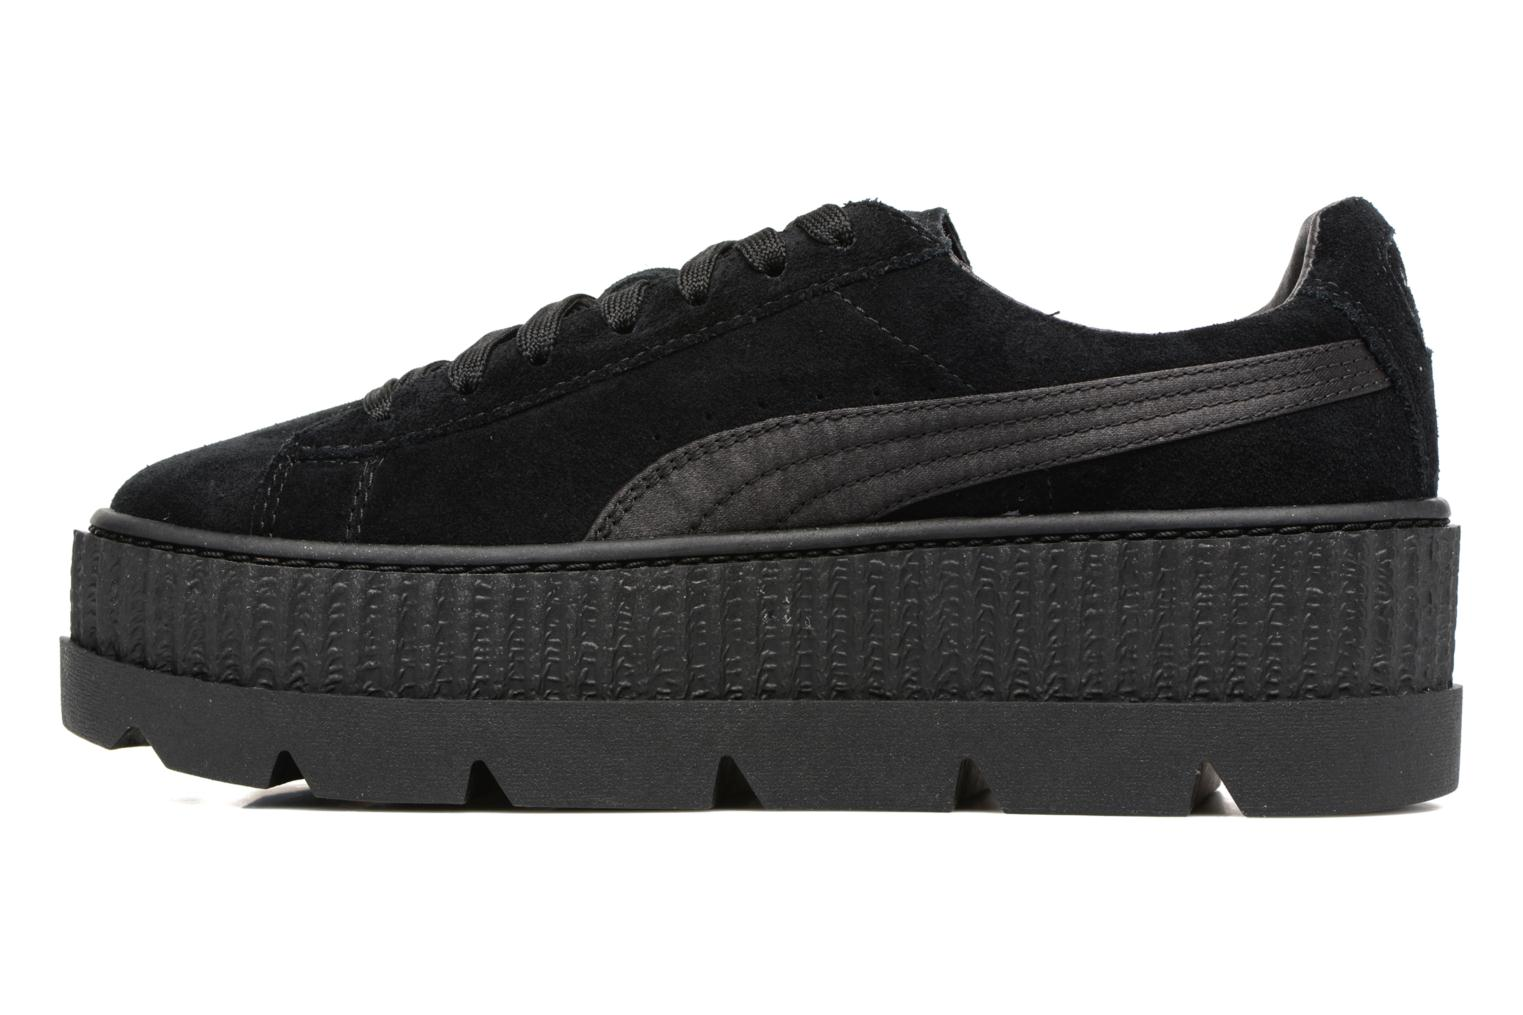 Fenty Wn Cleated Creeper Black